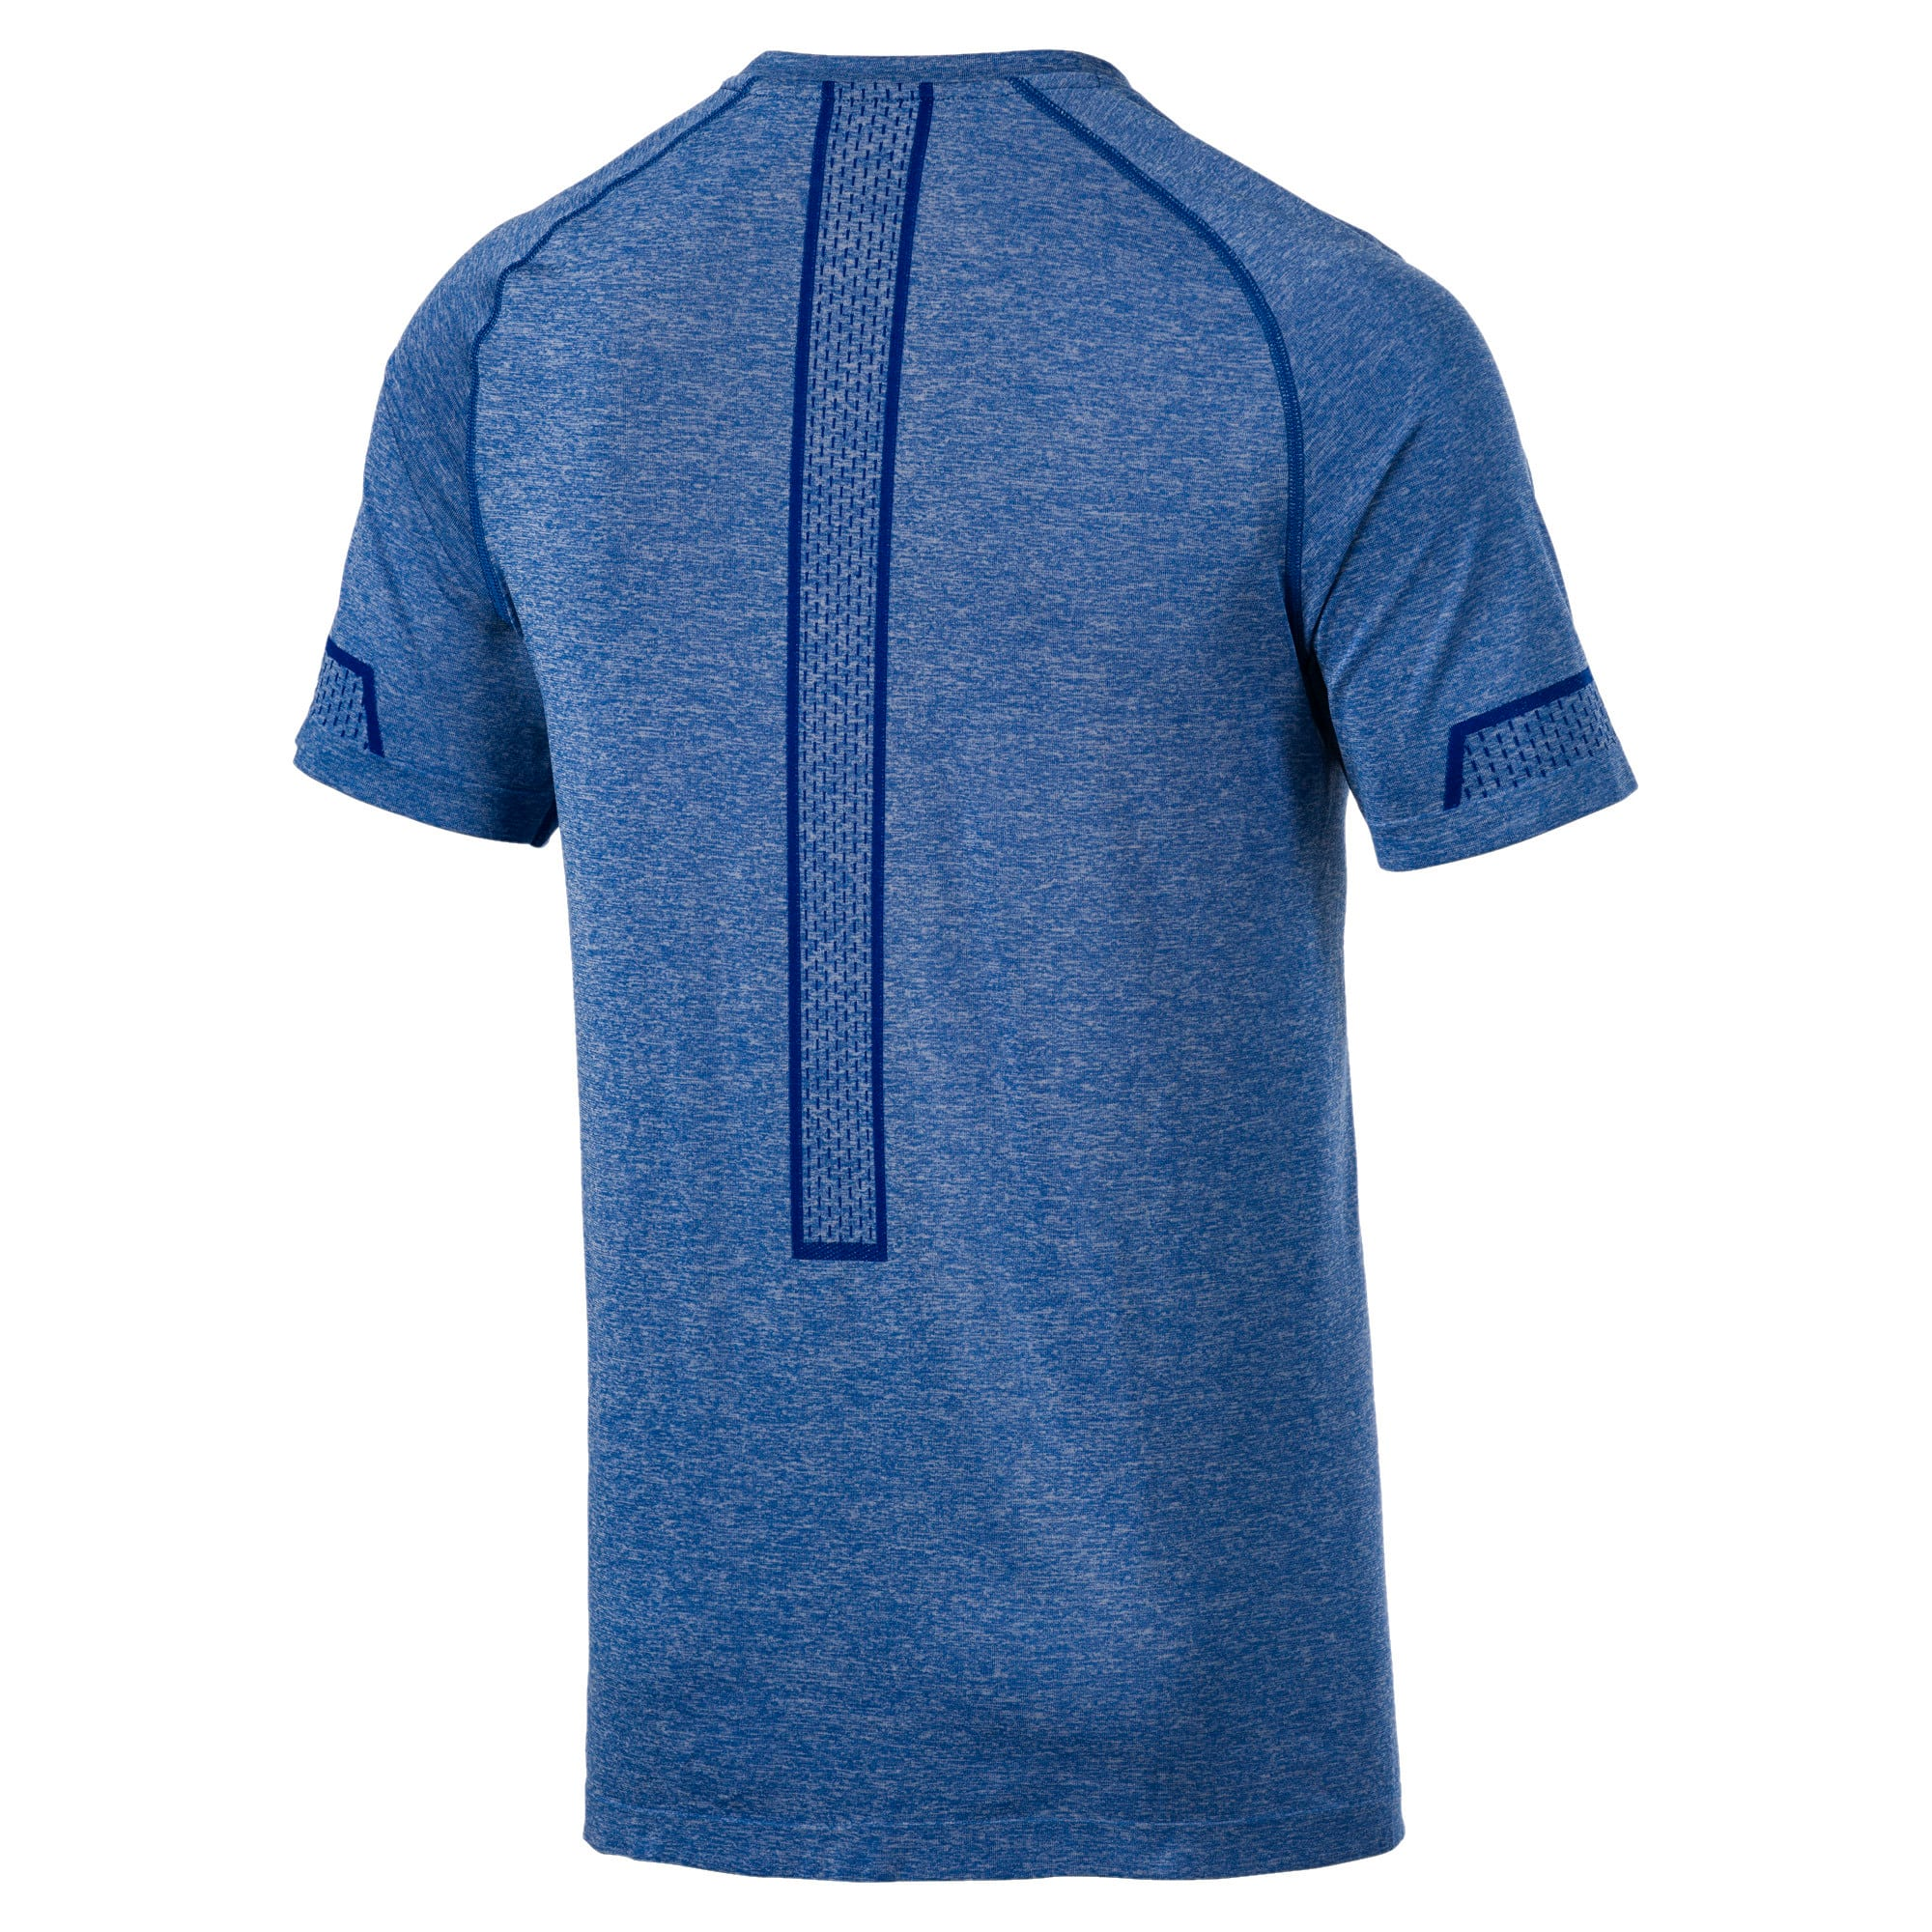 Thumbnail 5 of Naadloos Energy trainingsshirt voor heren, Galaxy Blue Heather, medium